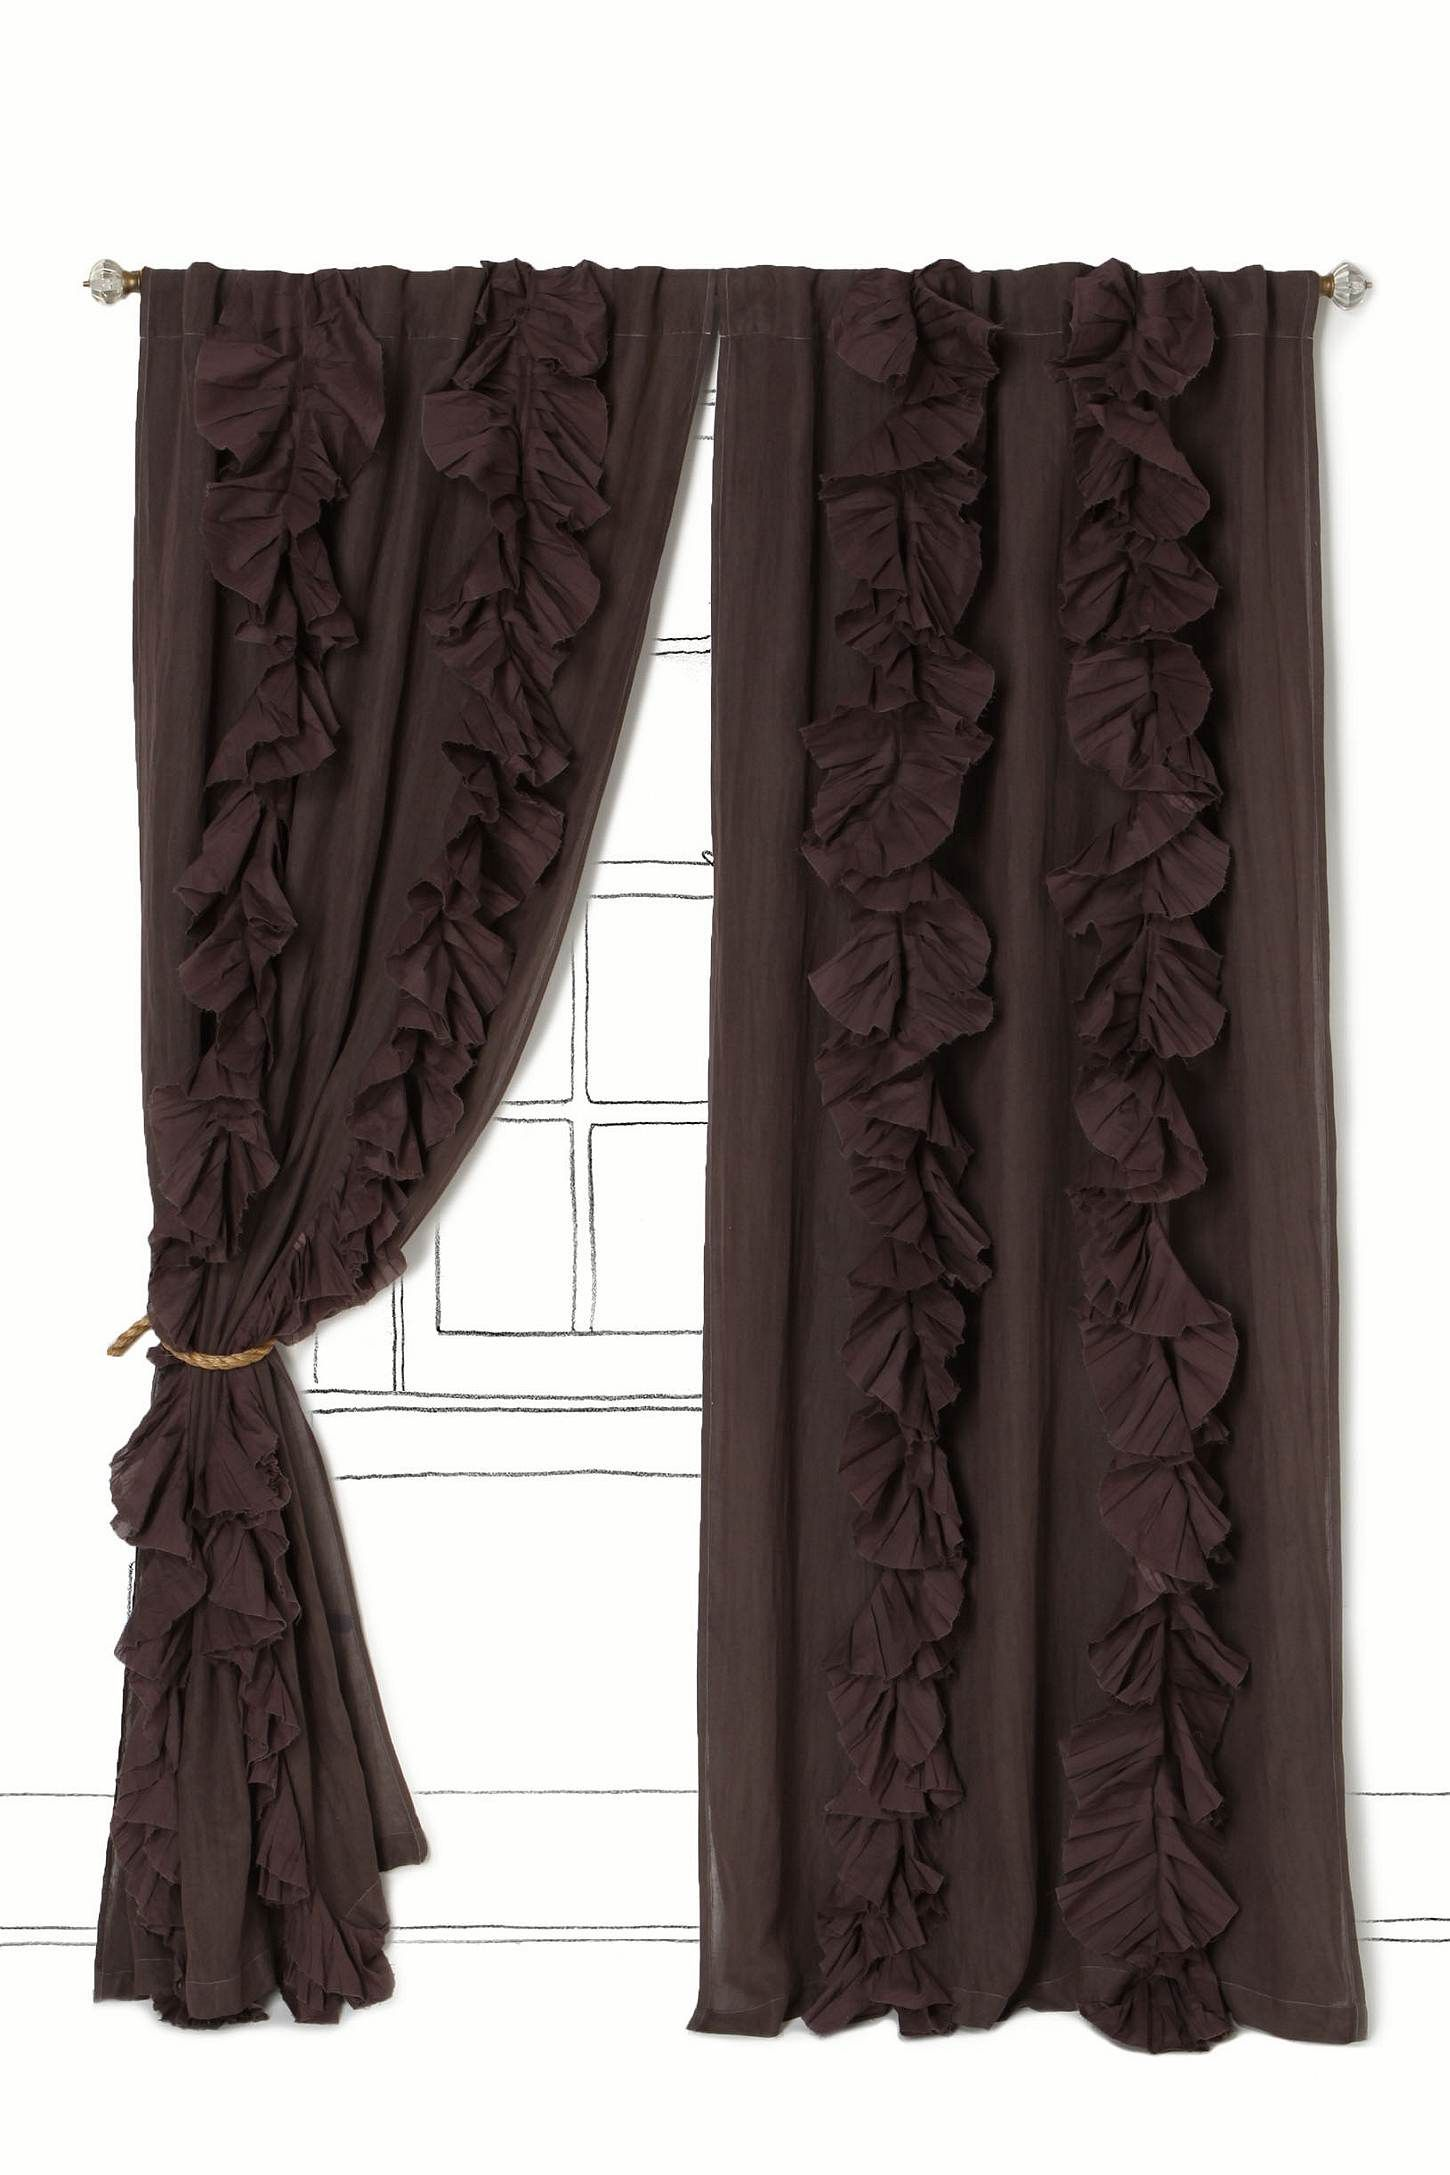 ruffle curtains using twin sheets, Love these!